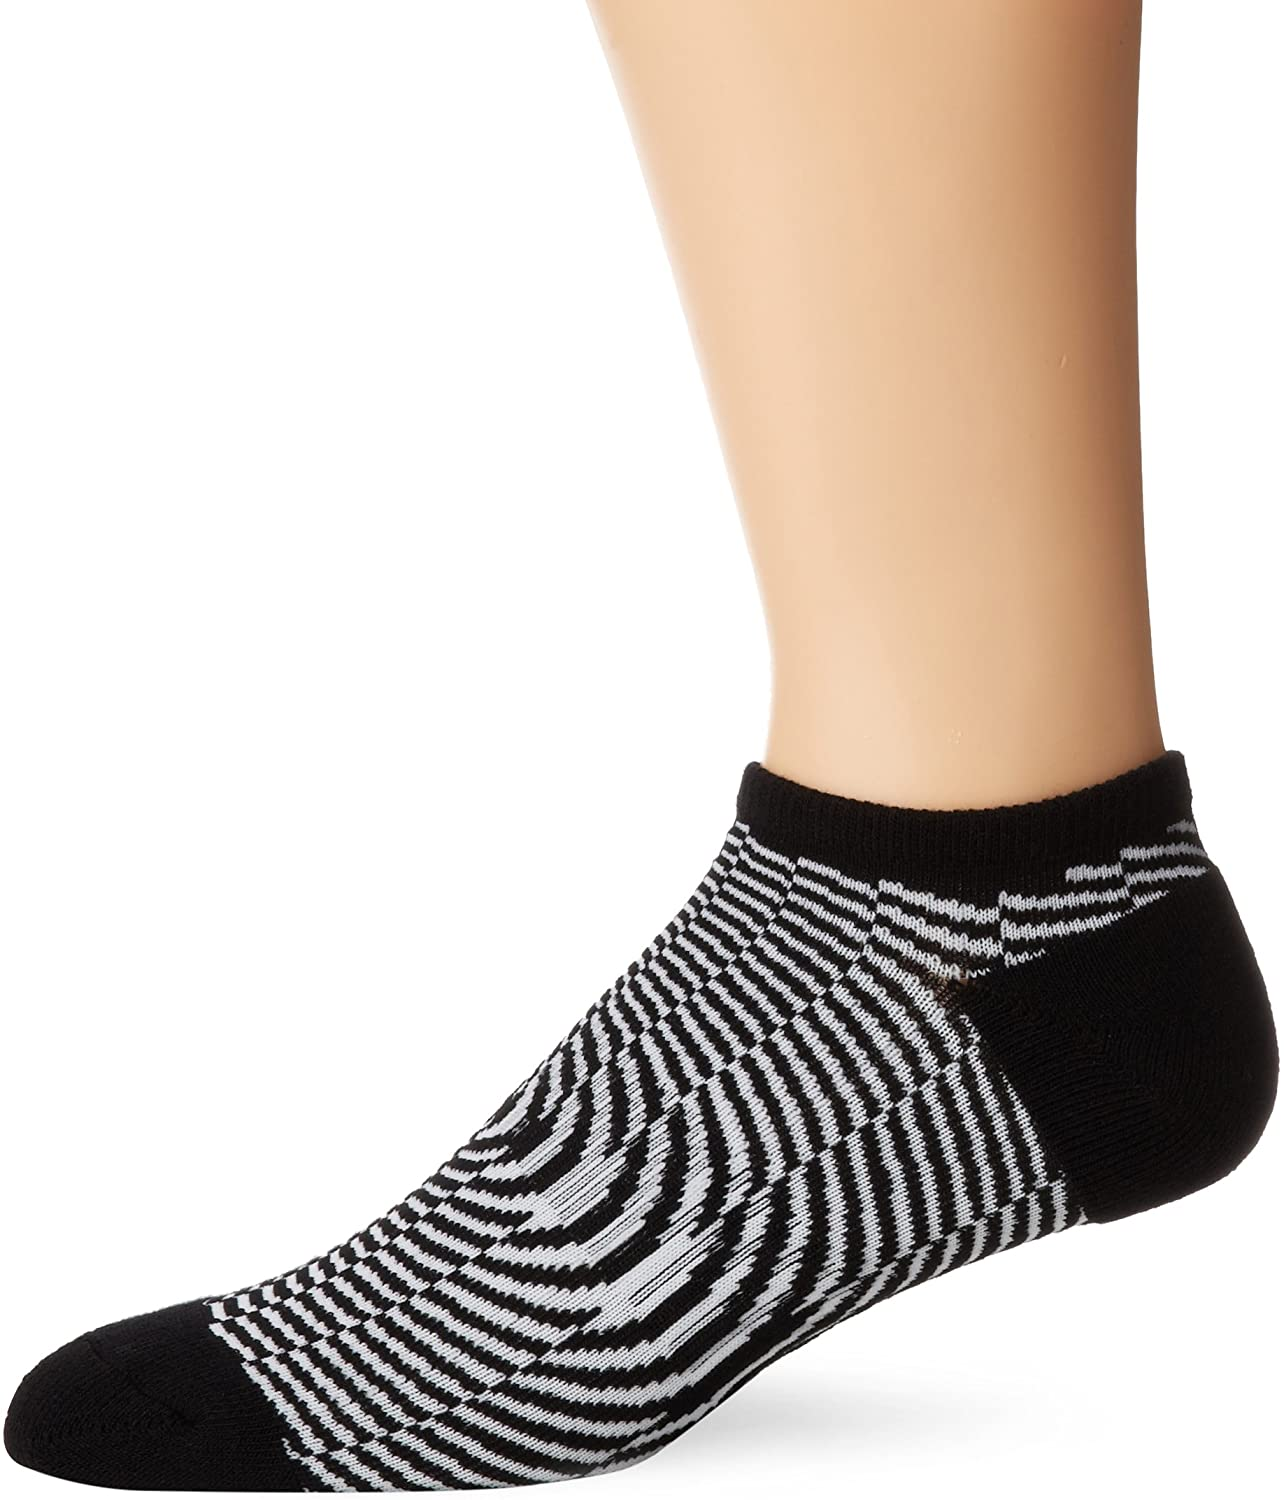 K. Bell Socks Mens Optic No Show Sock